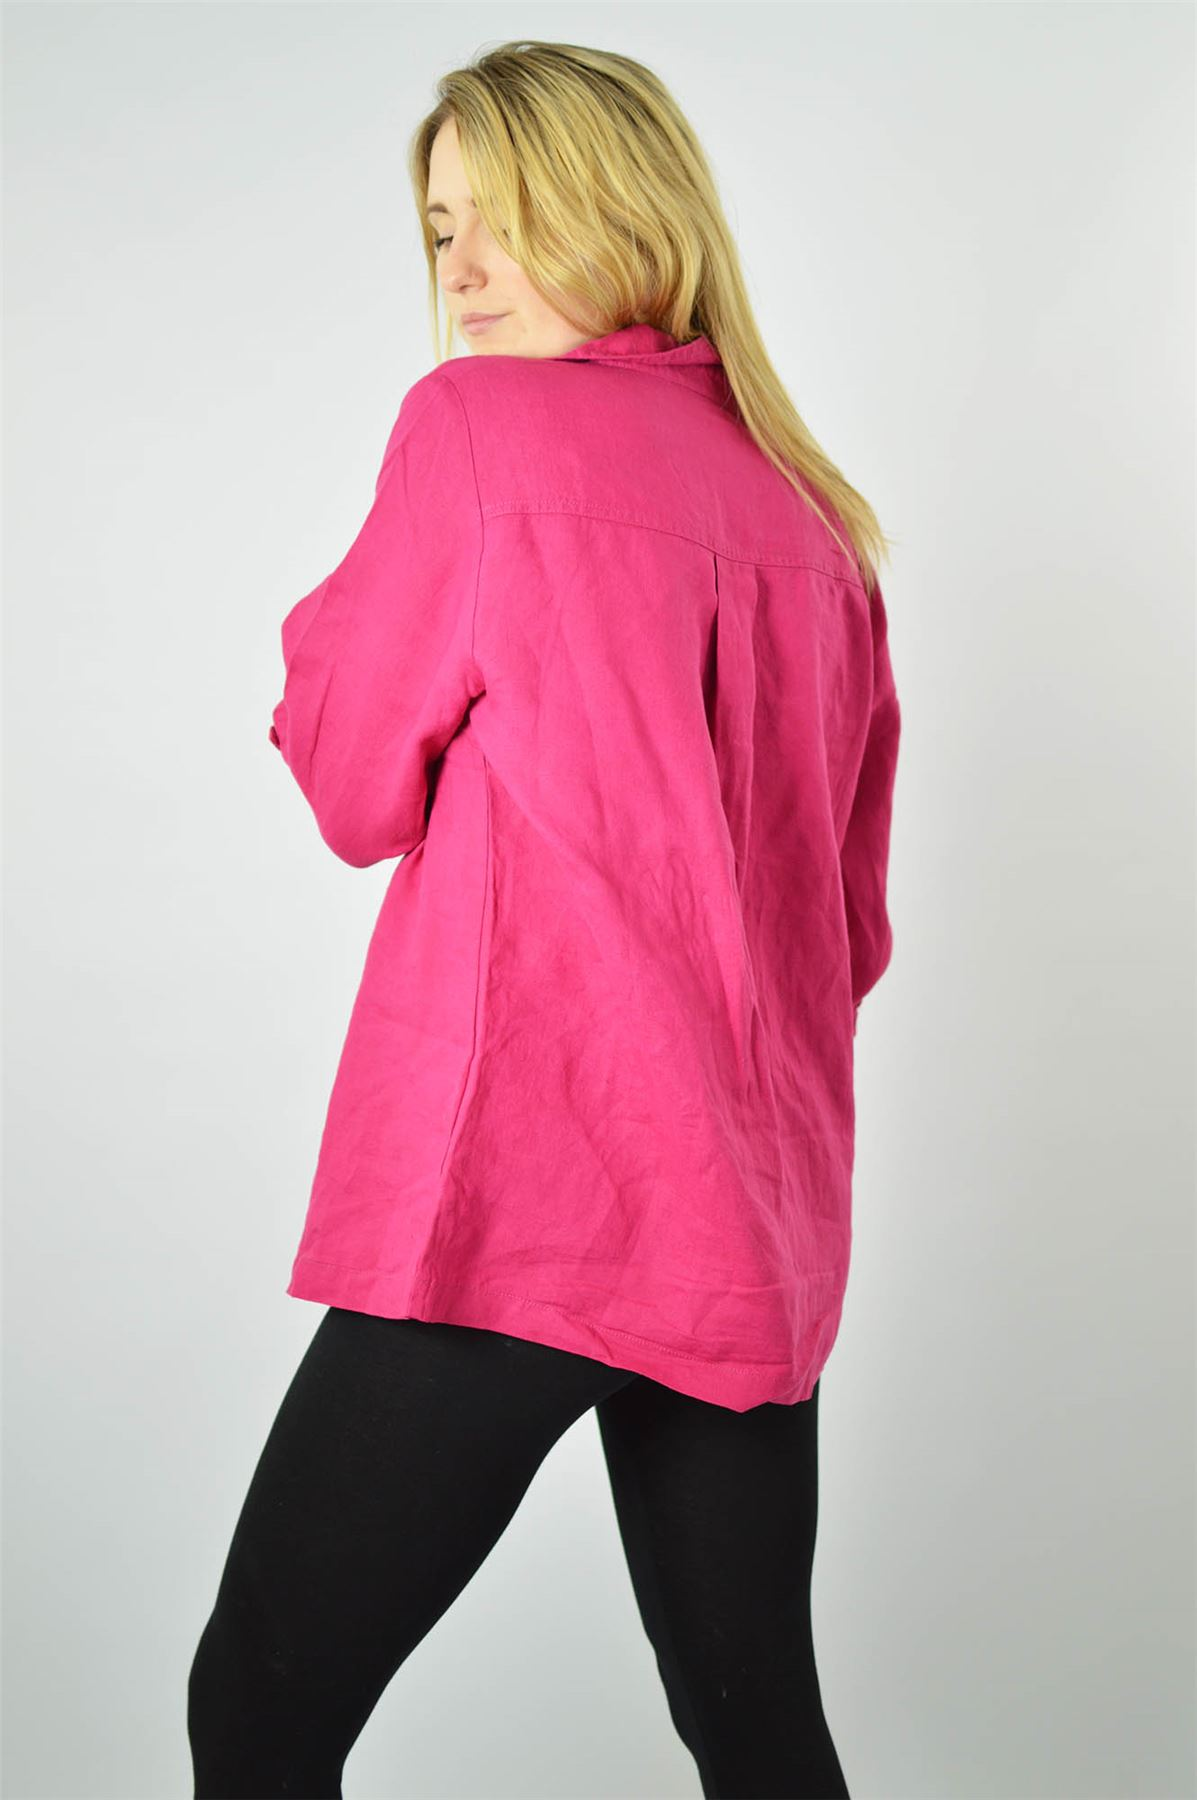 YESSICA-Linen-Blouse-Shirt-in-Pink-or-Ivory-RRP-25 thumbnail 12